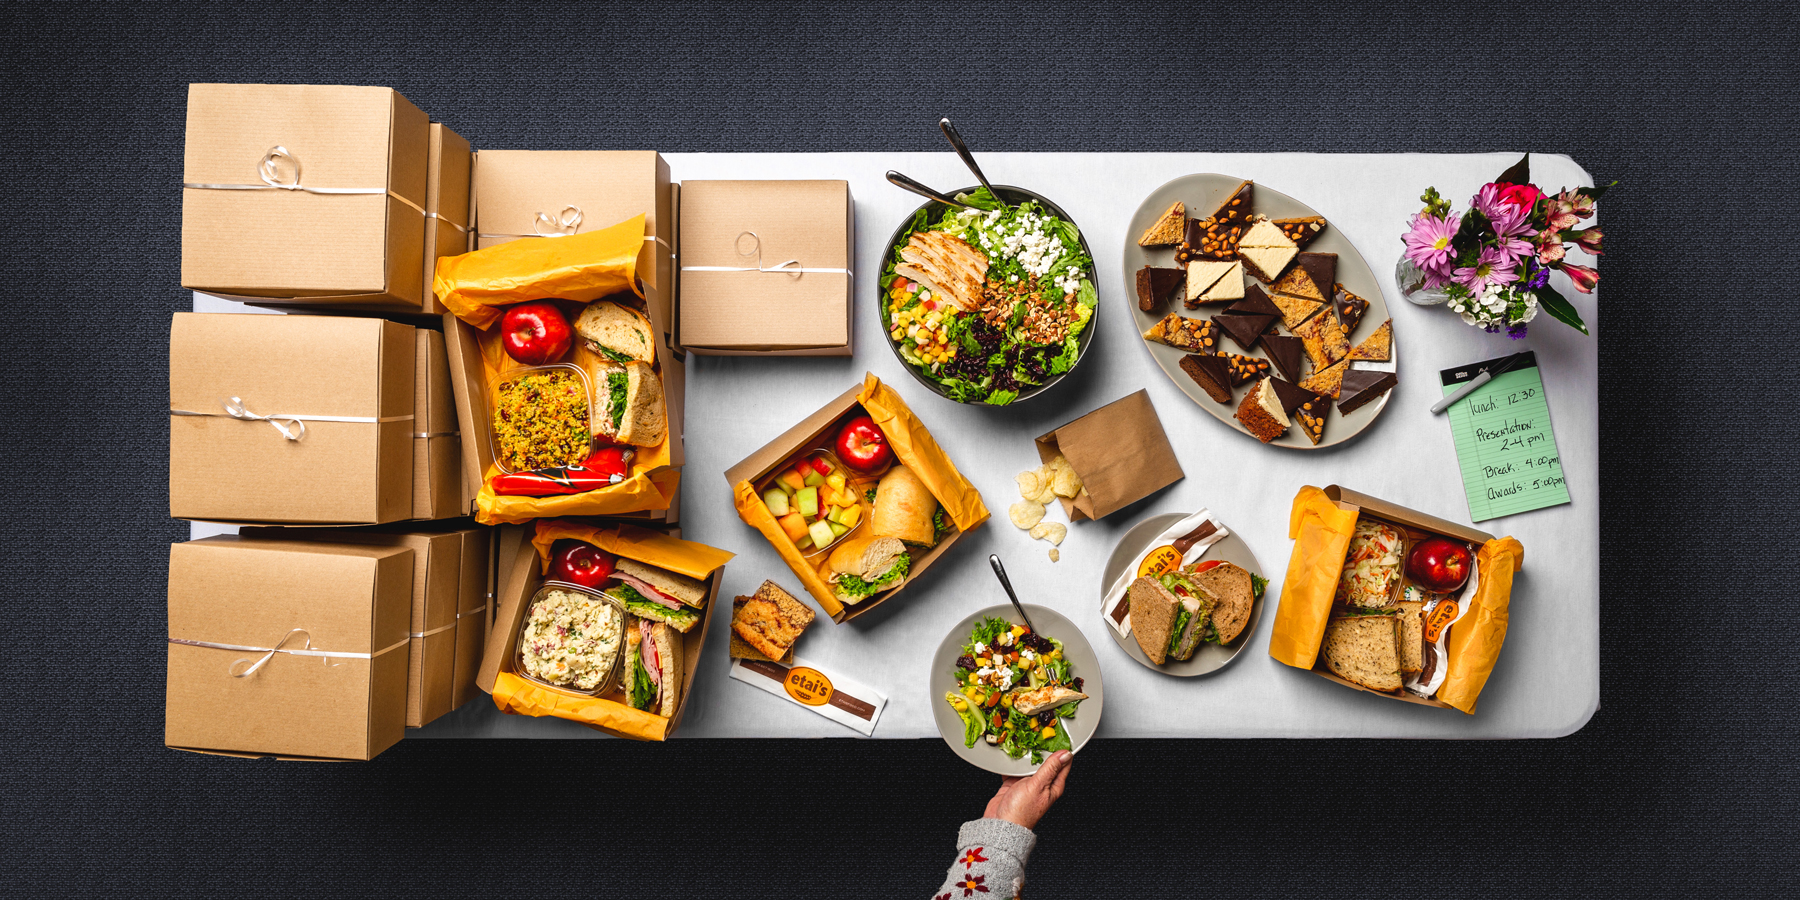 Lunch In A Box Denver Lunch Catering Box Lunches Etai S Catering